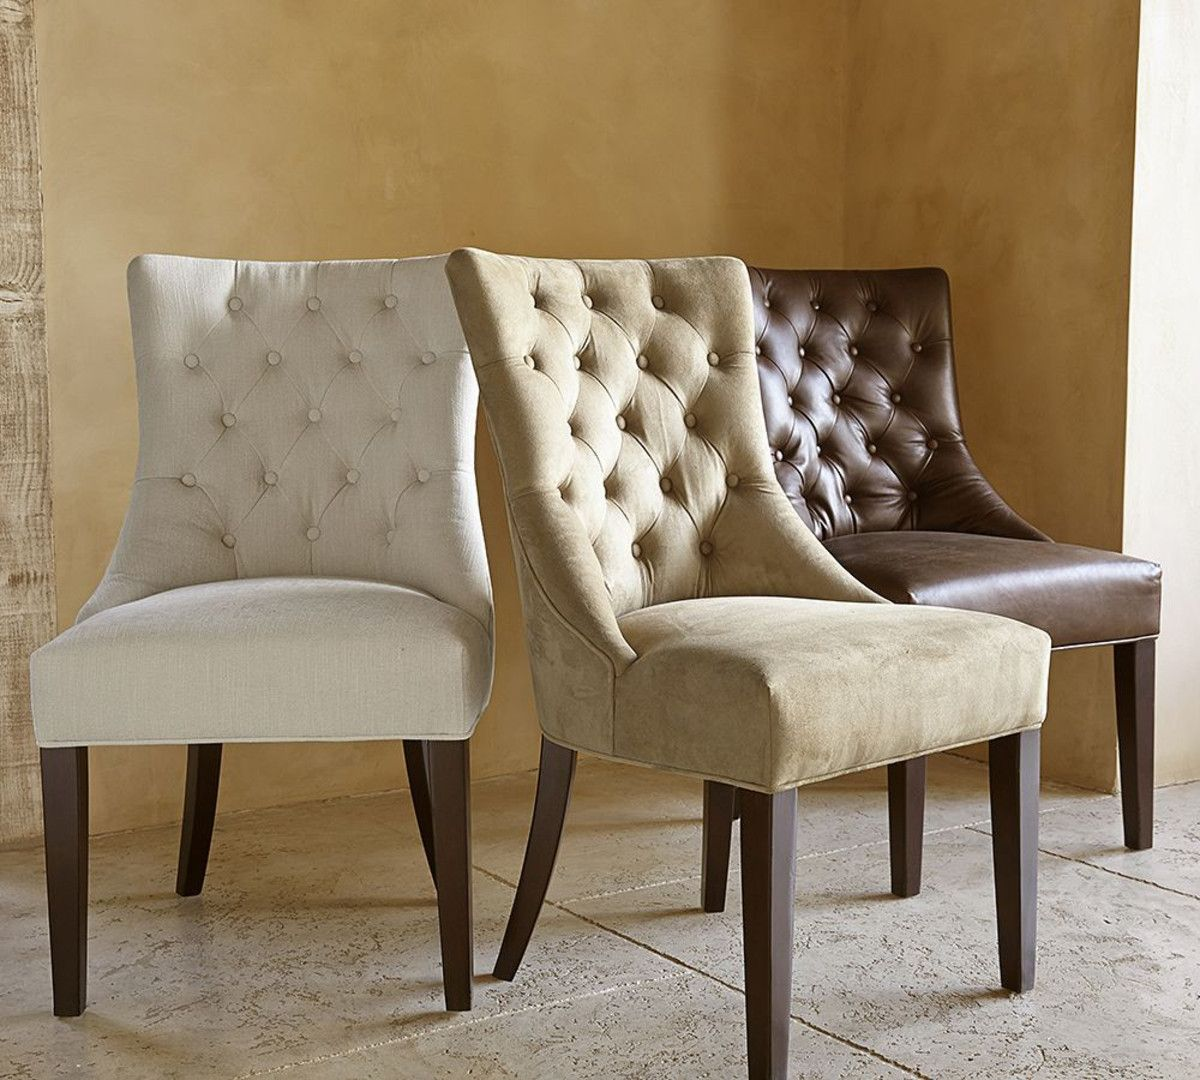 tufted back dining chair. Hayes Tufted Chair Designed With Deep Button Tufting And A Barrel-curved Back, This Back Dining